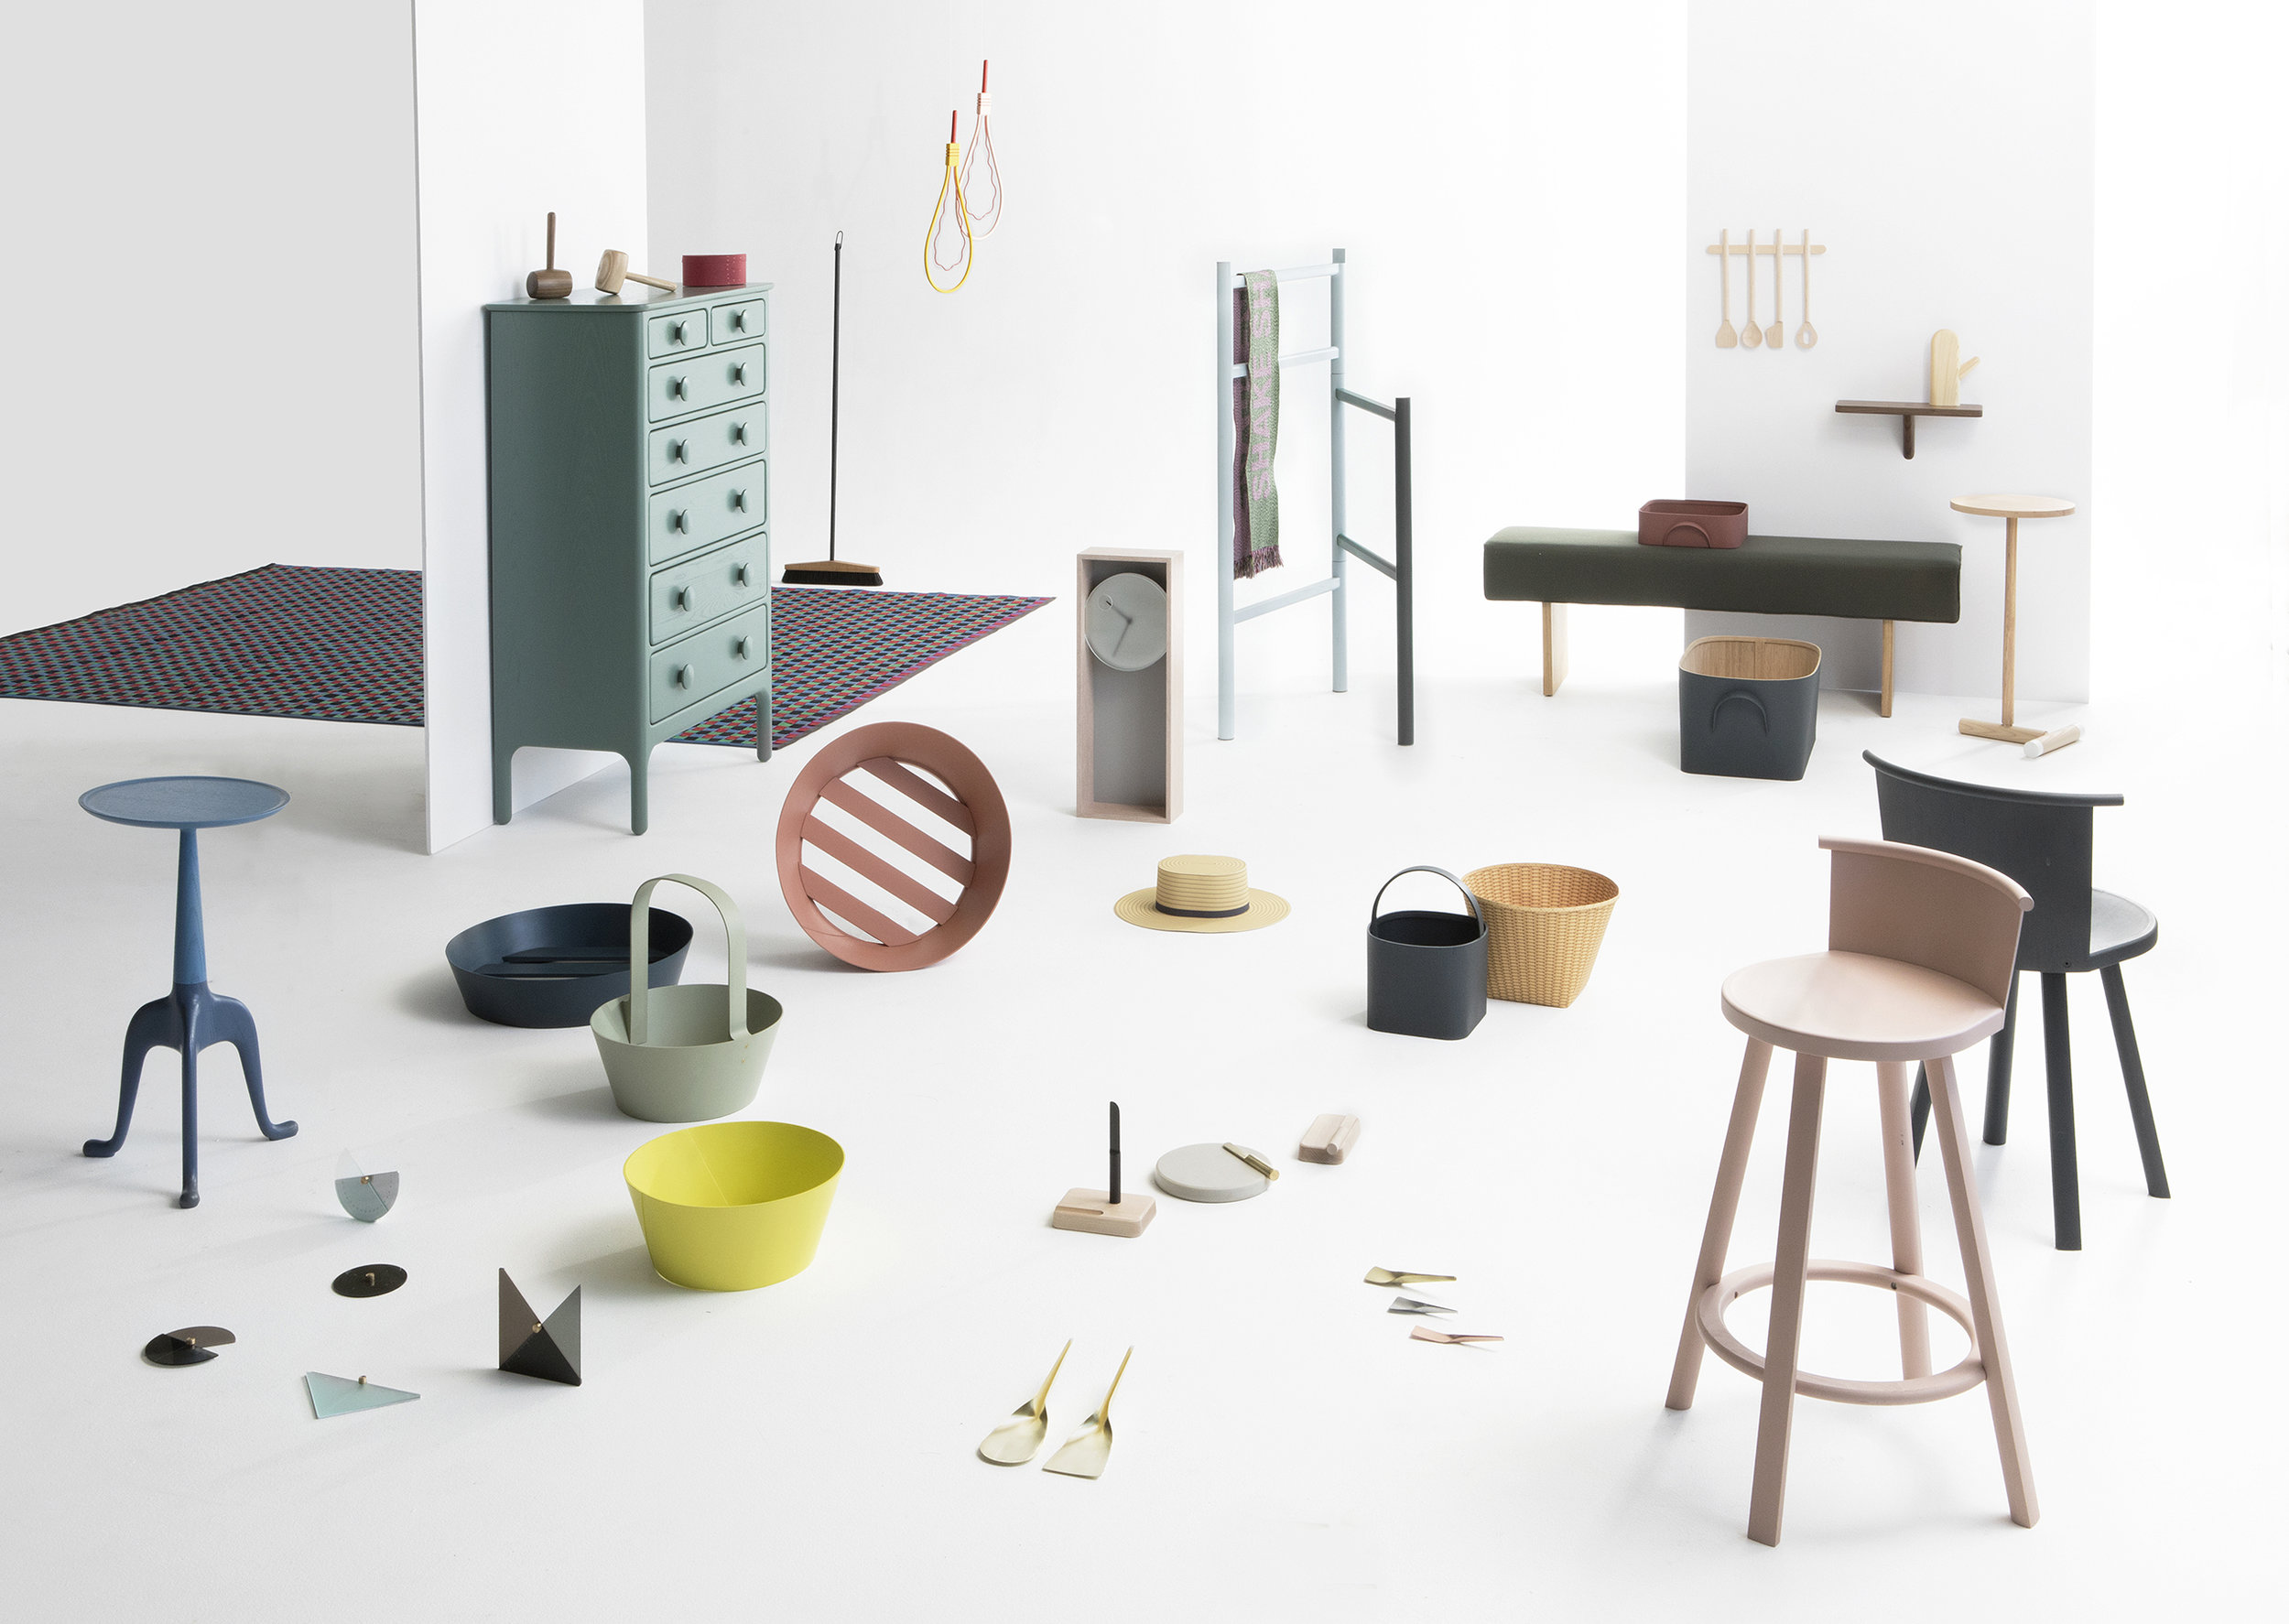 FURNISHING UTOPIA  Exhibition / Curation